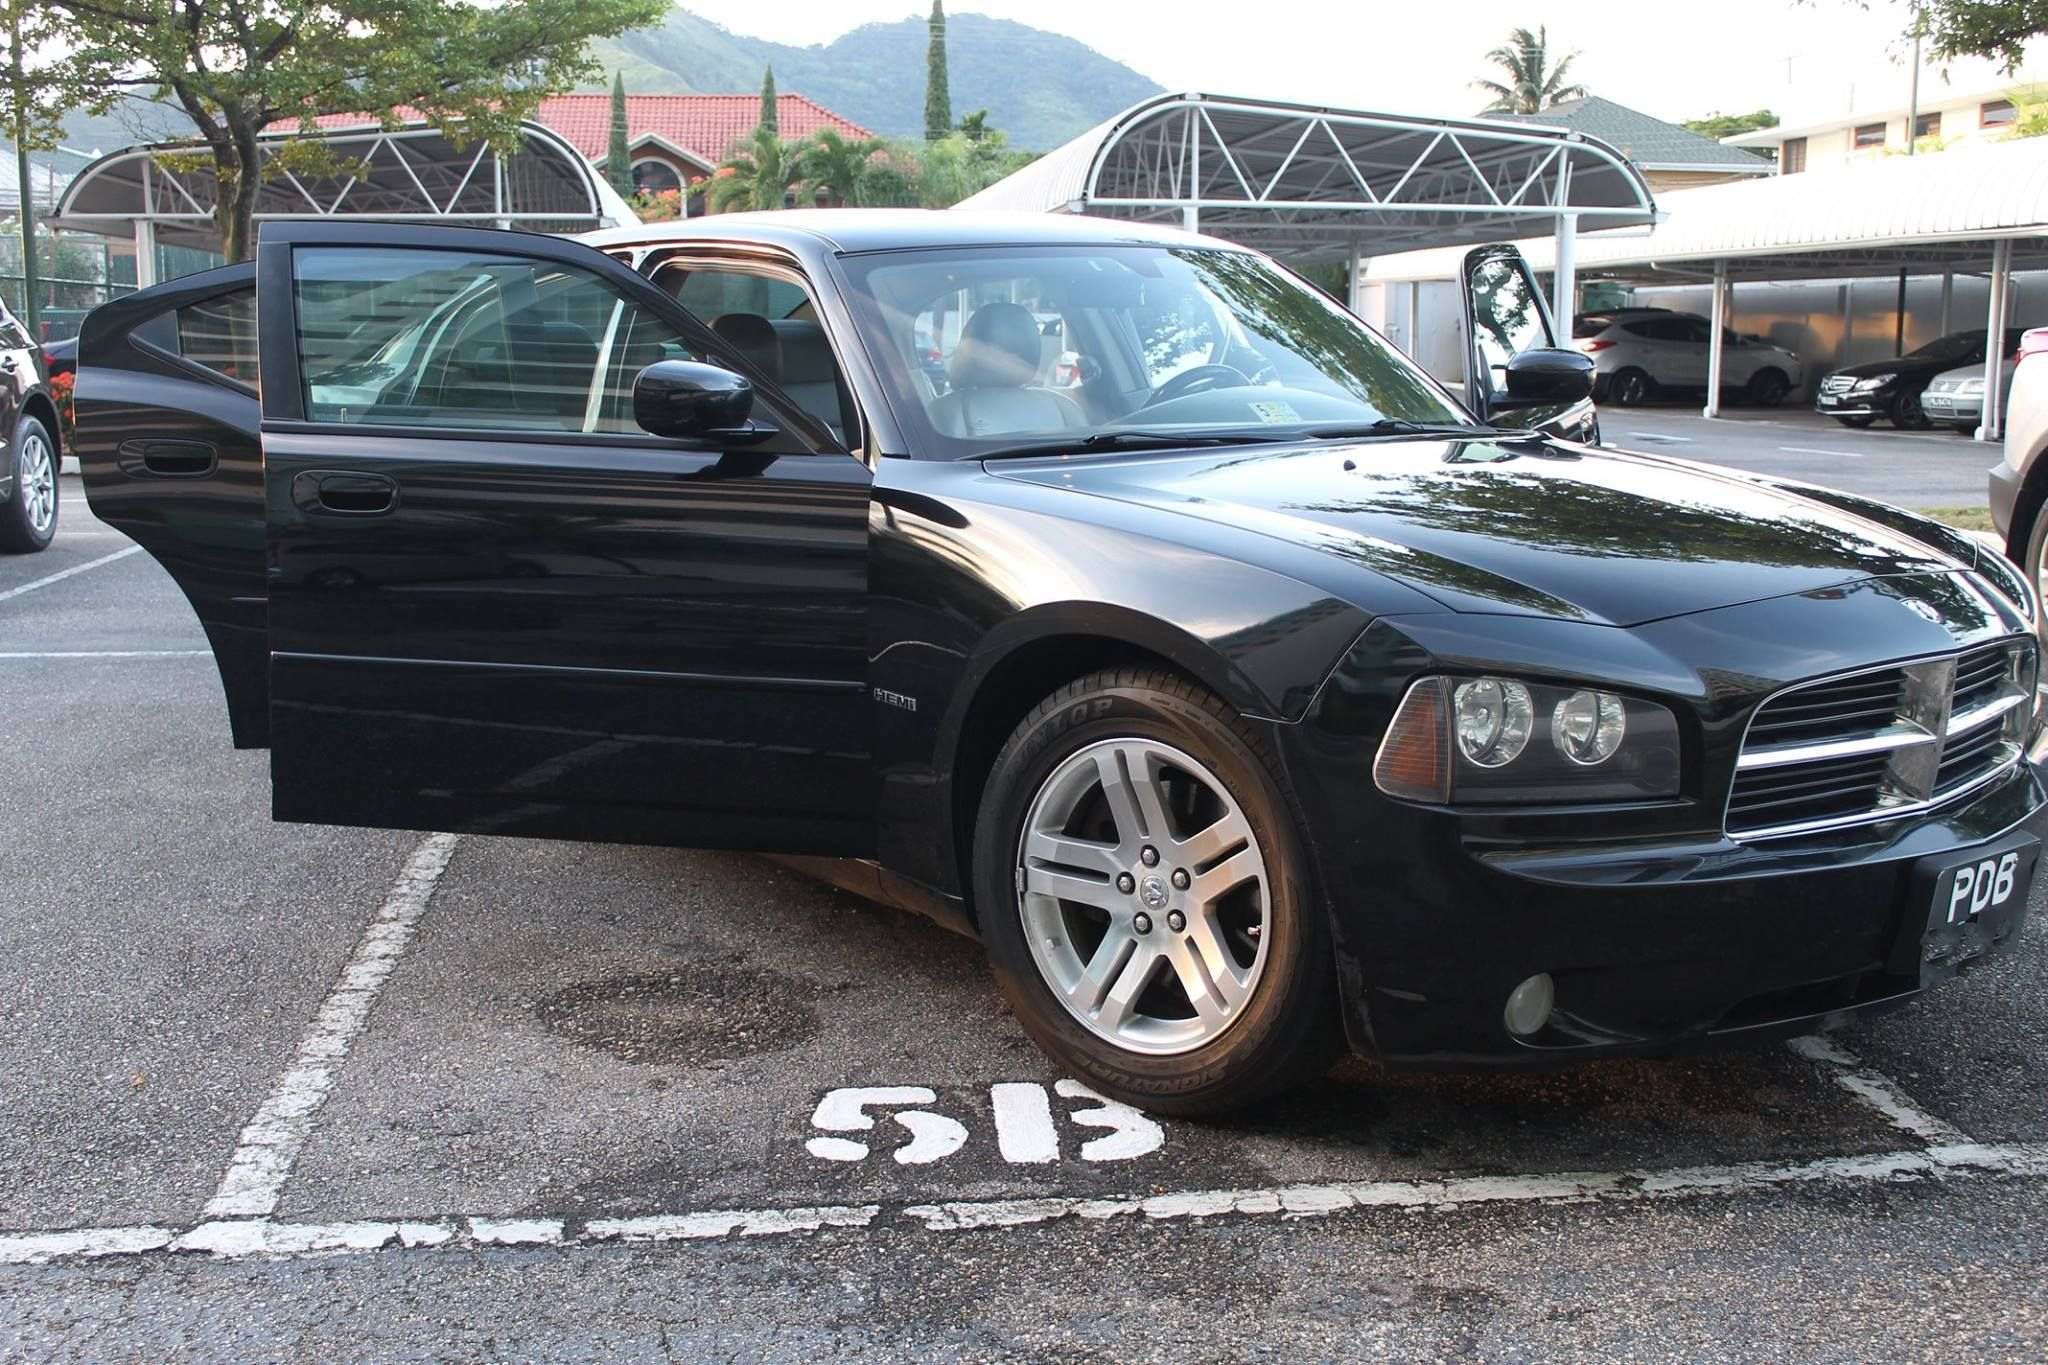 Car Sale 2000 Inspirational 2006 Dodge Charger R T 5 7l Hemi Original Owner 94 000 Dodge Charger Cars For Sale Classic Car Photography